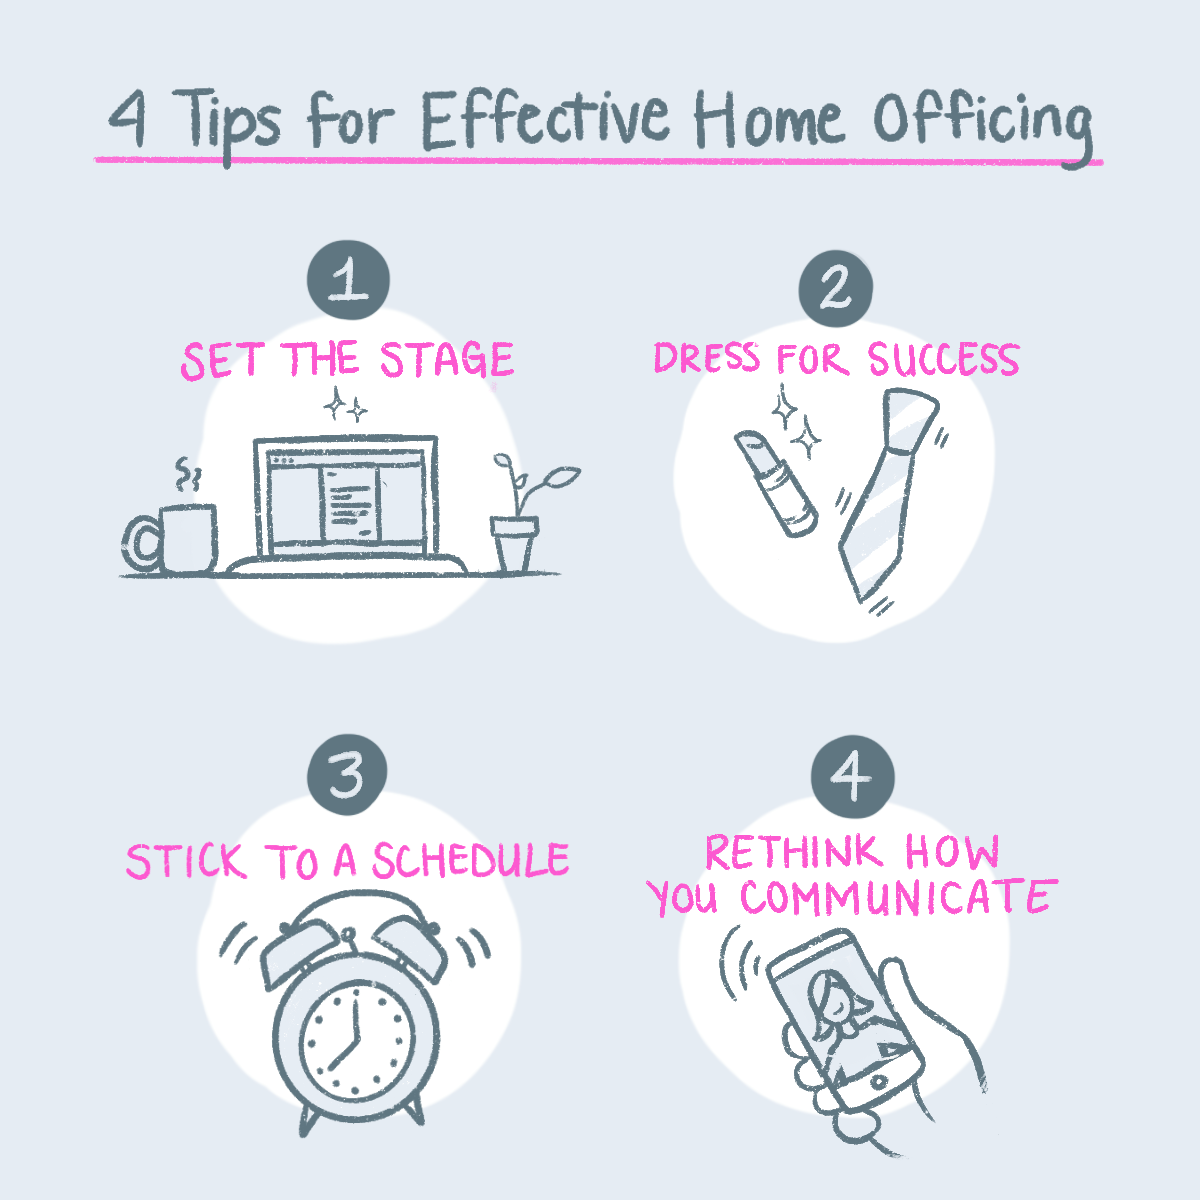 4TipsforEffectiveHomeOfficing-squashed